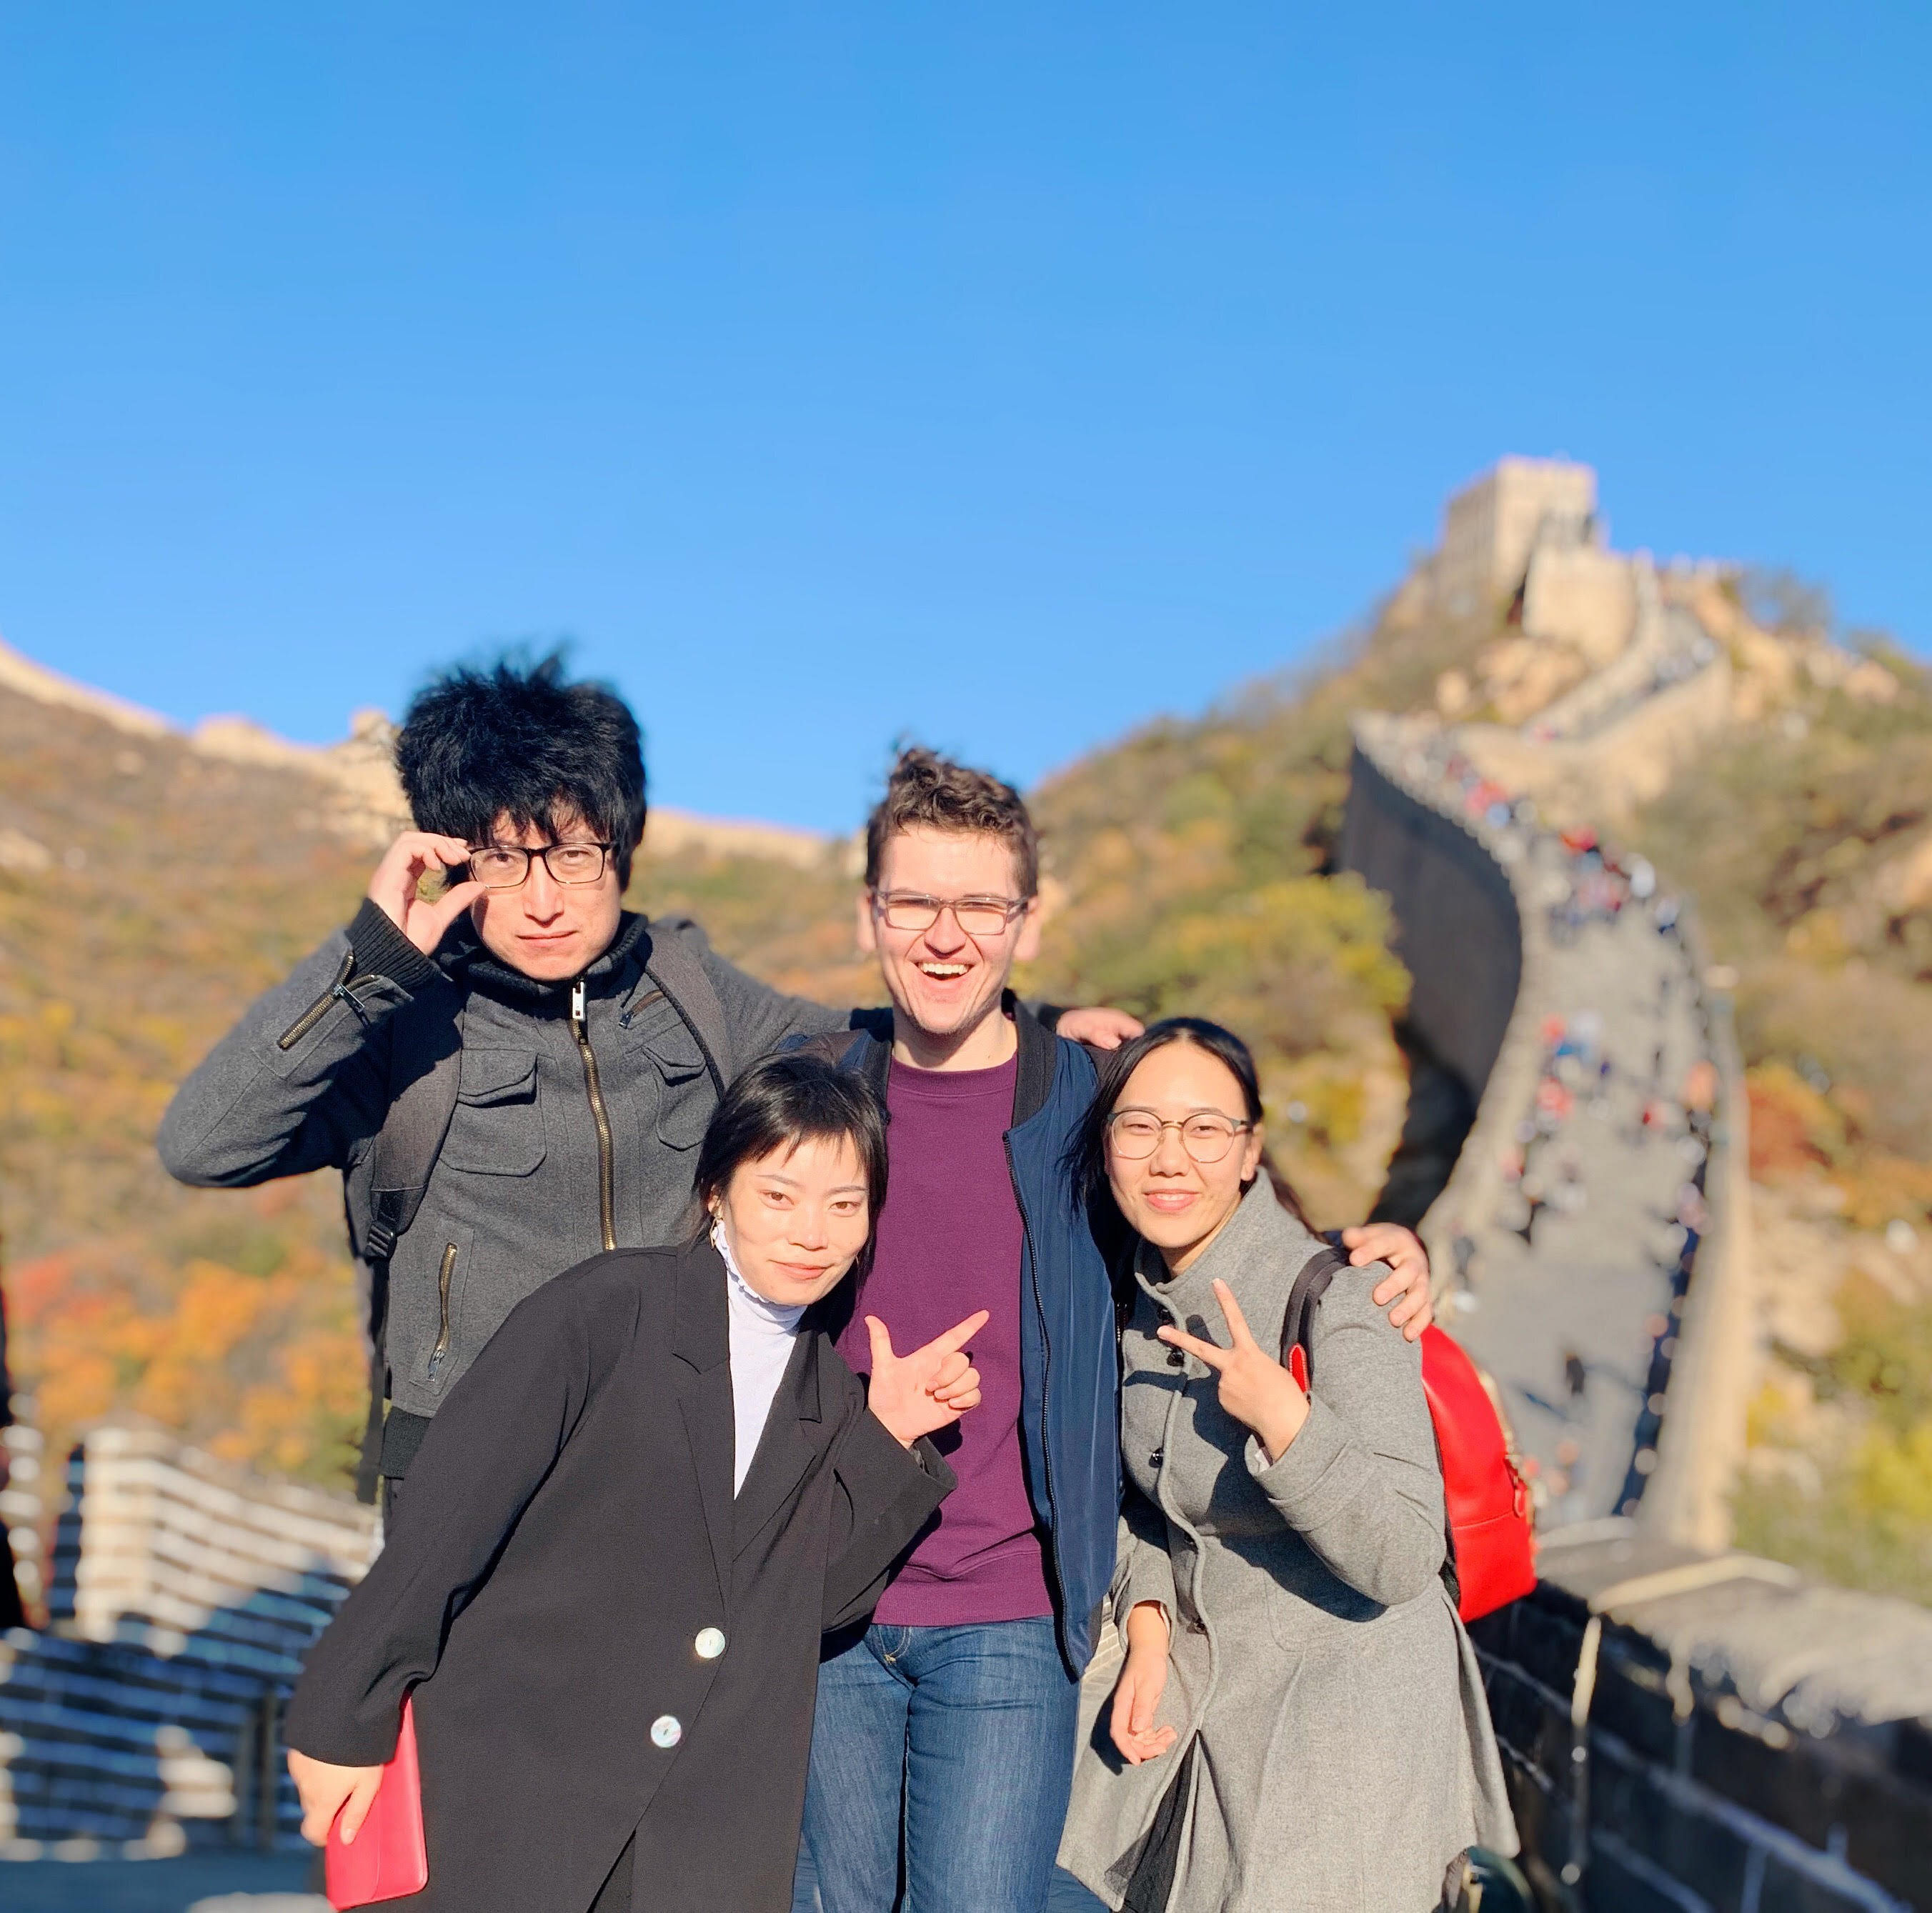 Vanishing Inc. team on Great Wall of China